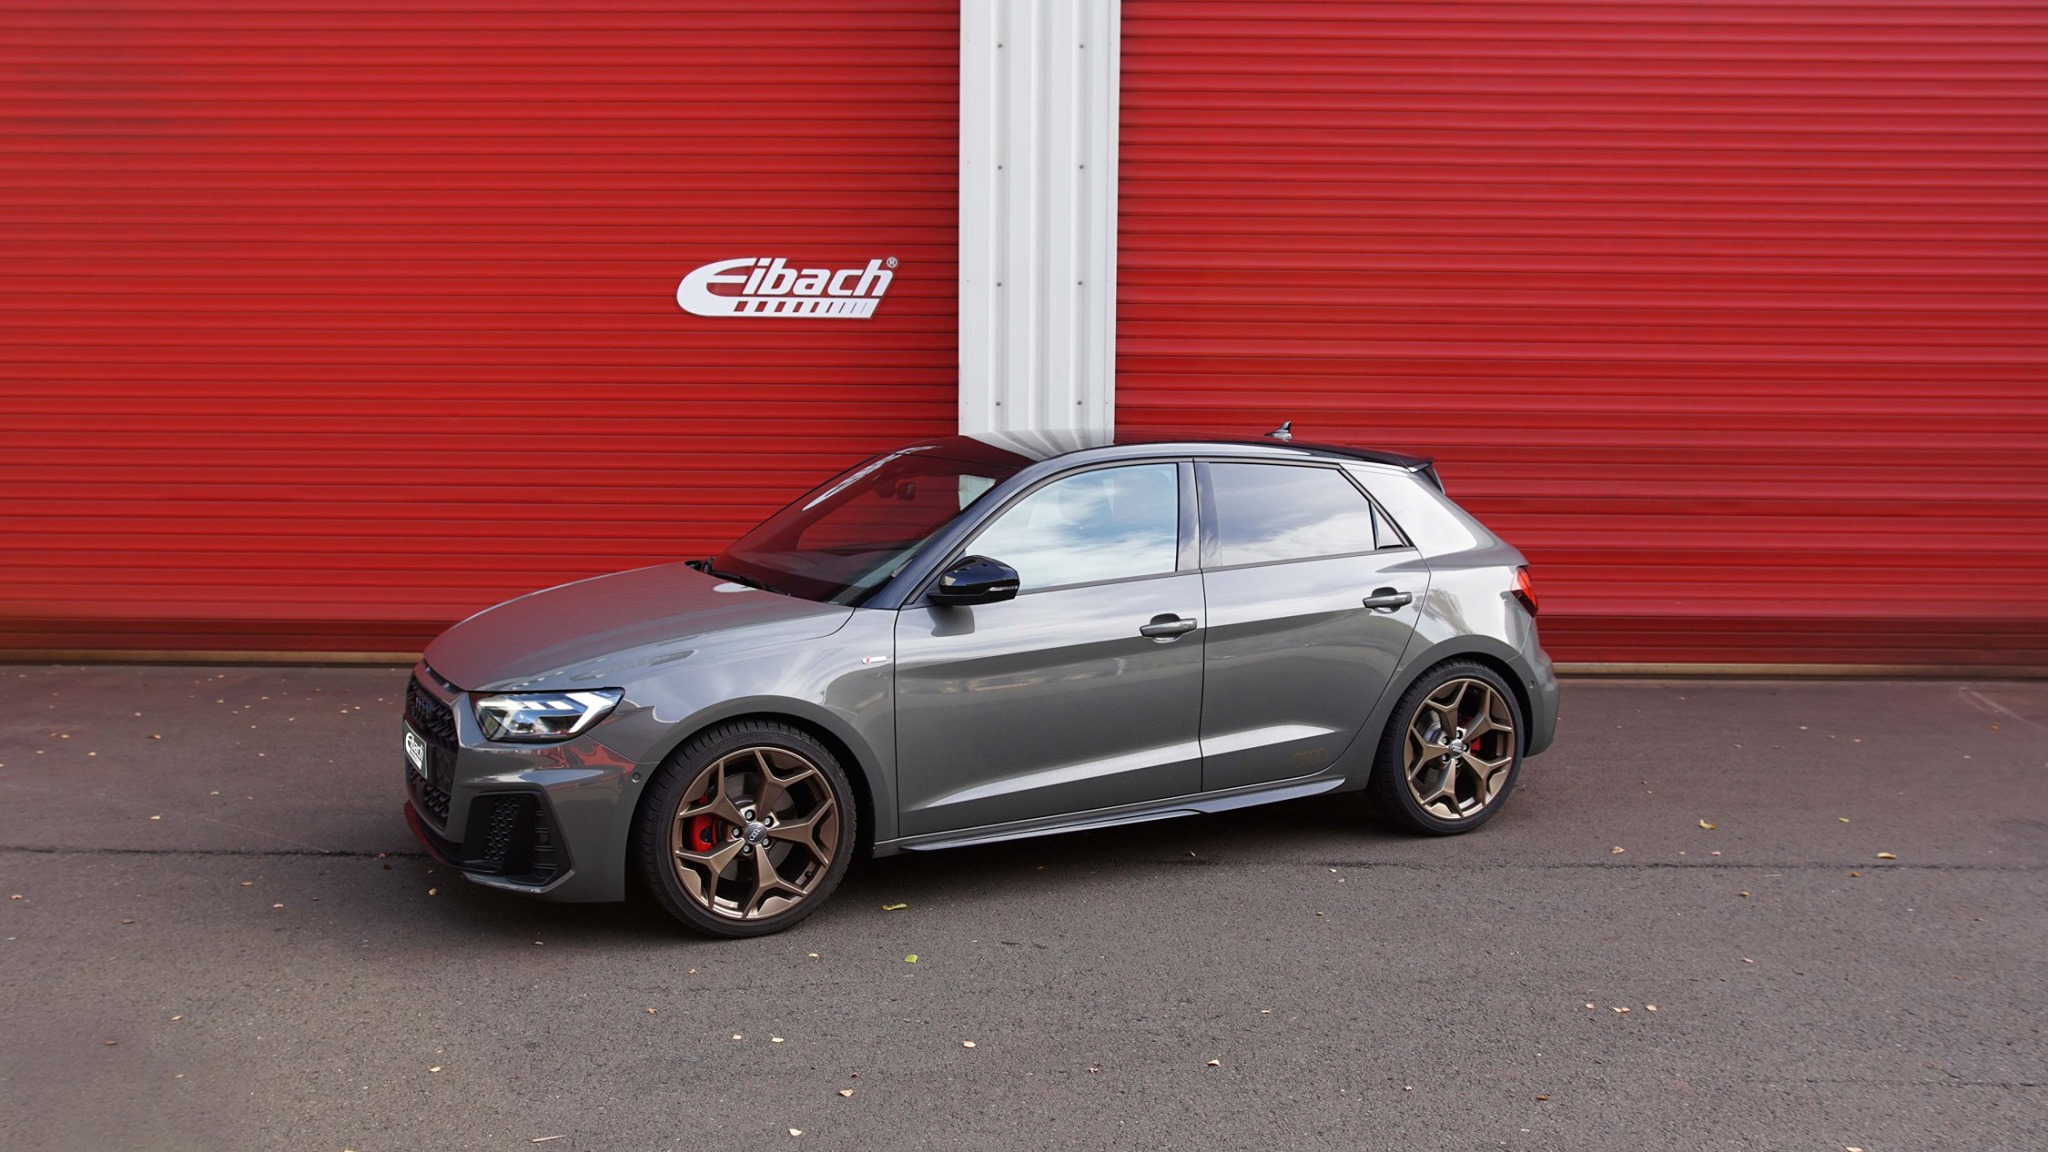 Eibach Pro-Kit for Audi A1